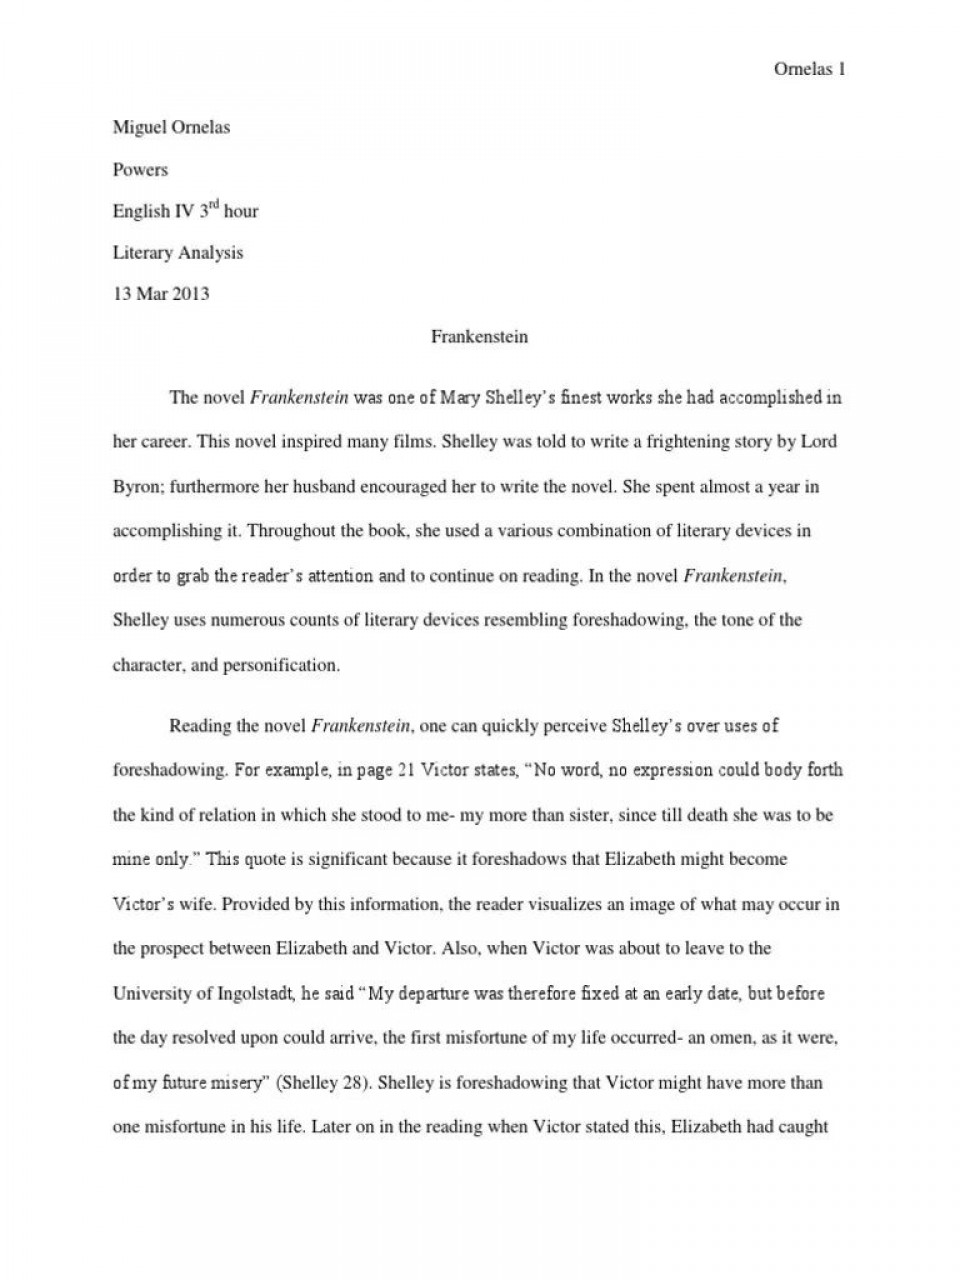 005 Outstanding Frankenstein Essay High Resolution  Critical Pdf Question Who I The Real Monster960